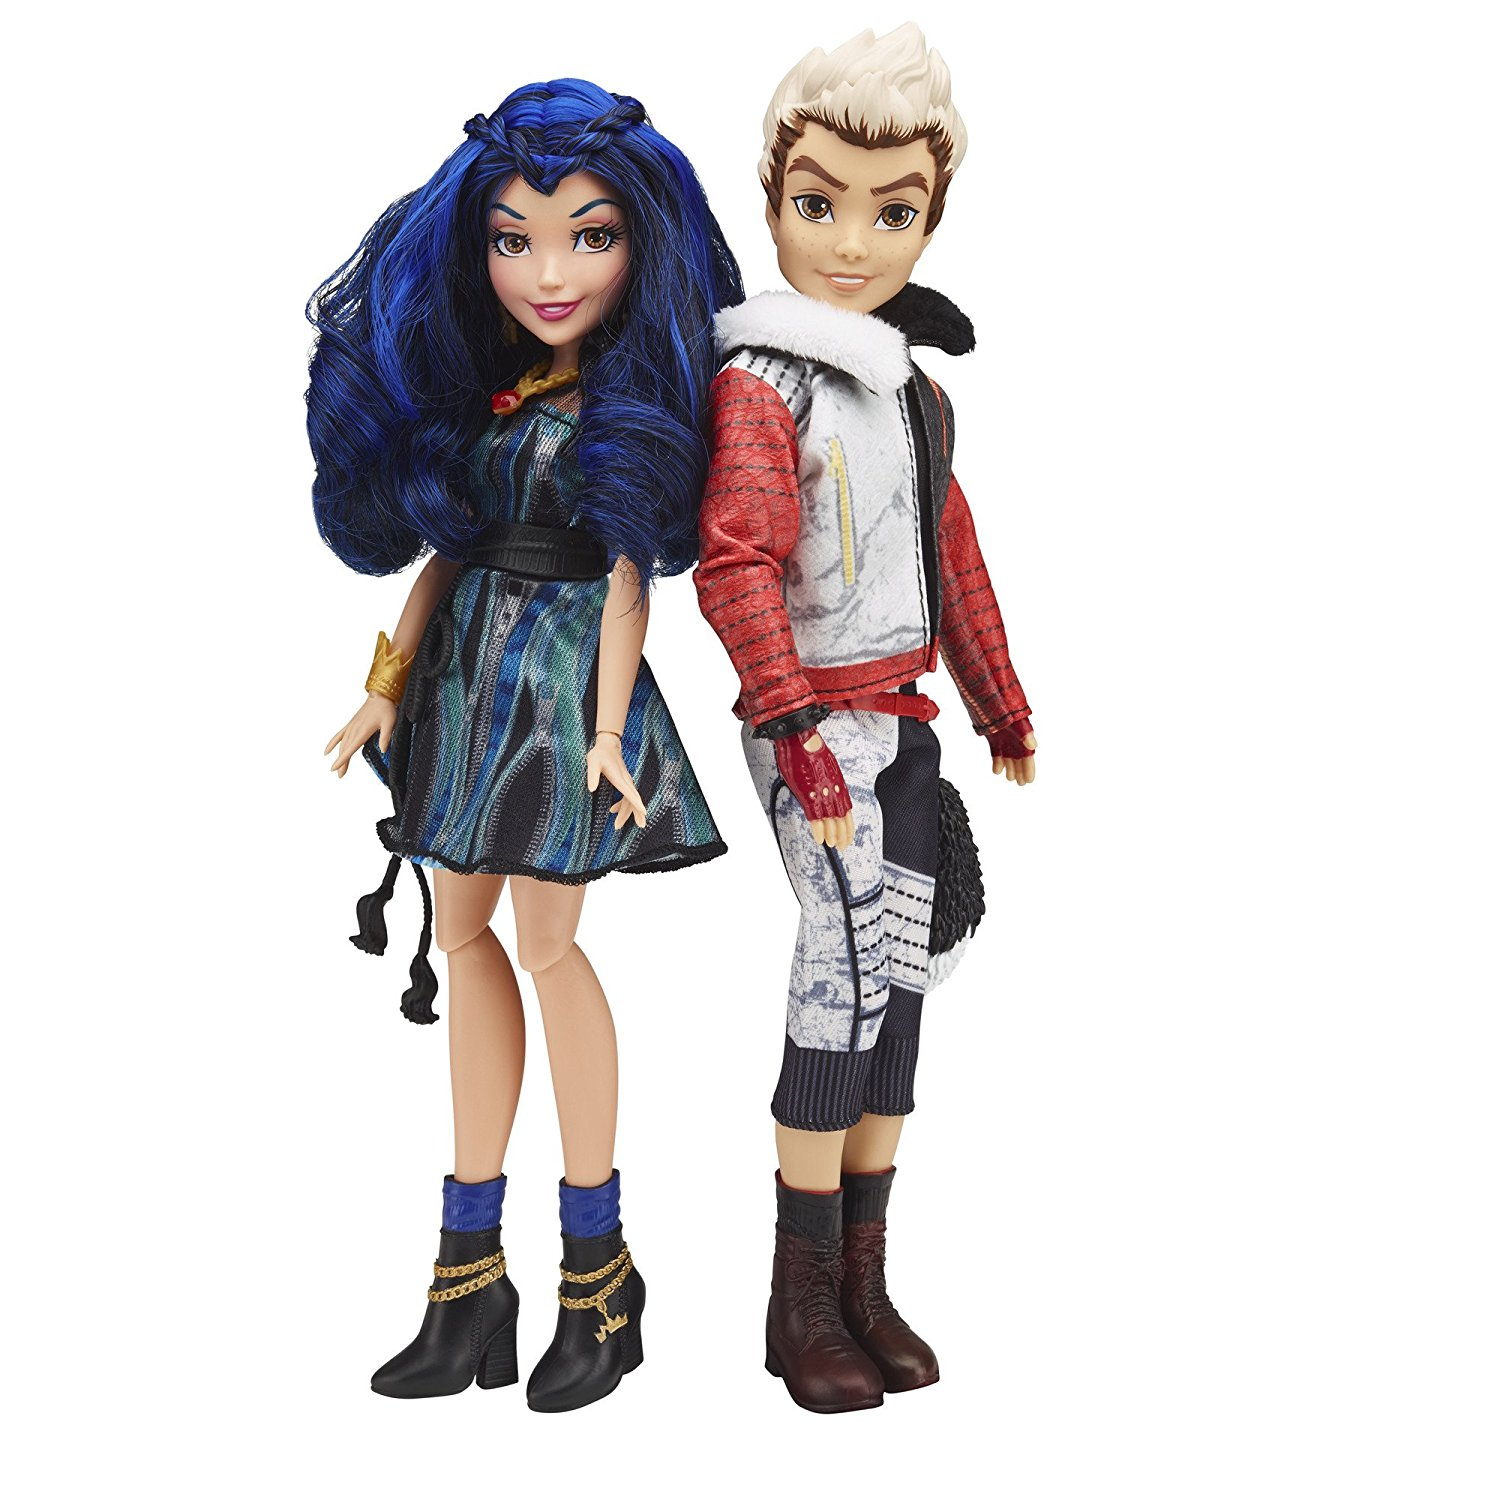 Amazon Deal: Disney Descendants Two-Pack Evie Isle of the Lost and Carlos Isle of the Lost Dolls – Only $18.99 (Regular $29.99)